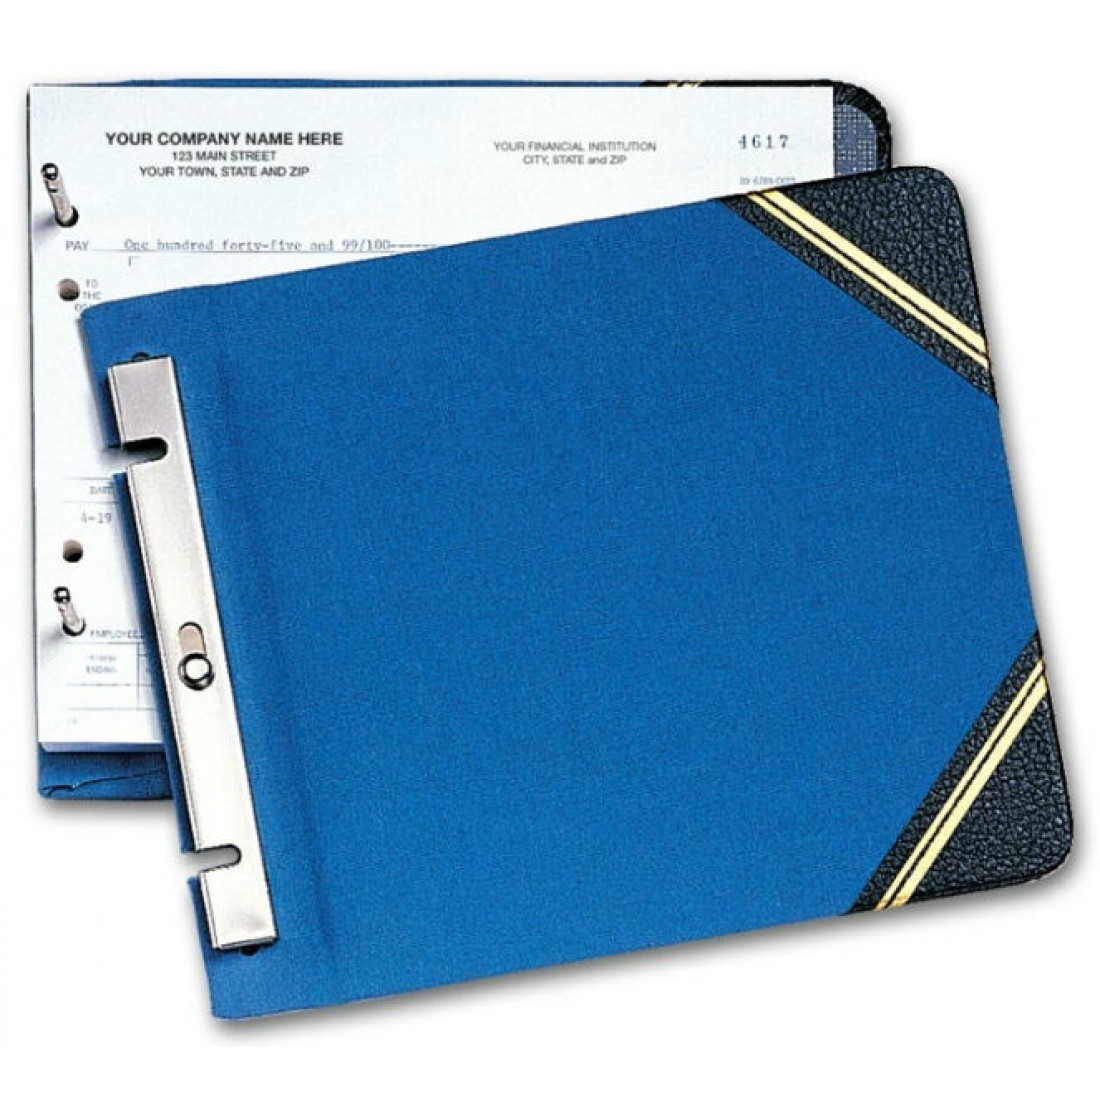 Voucher Checks Binder (54064N) - Check Binders & Covers  - Business Checks